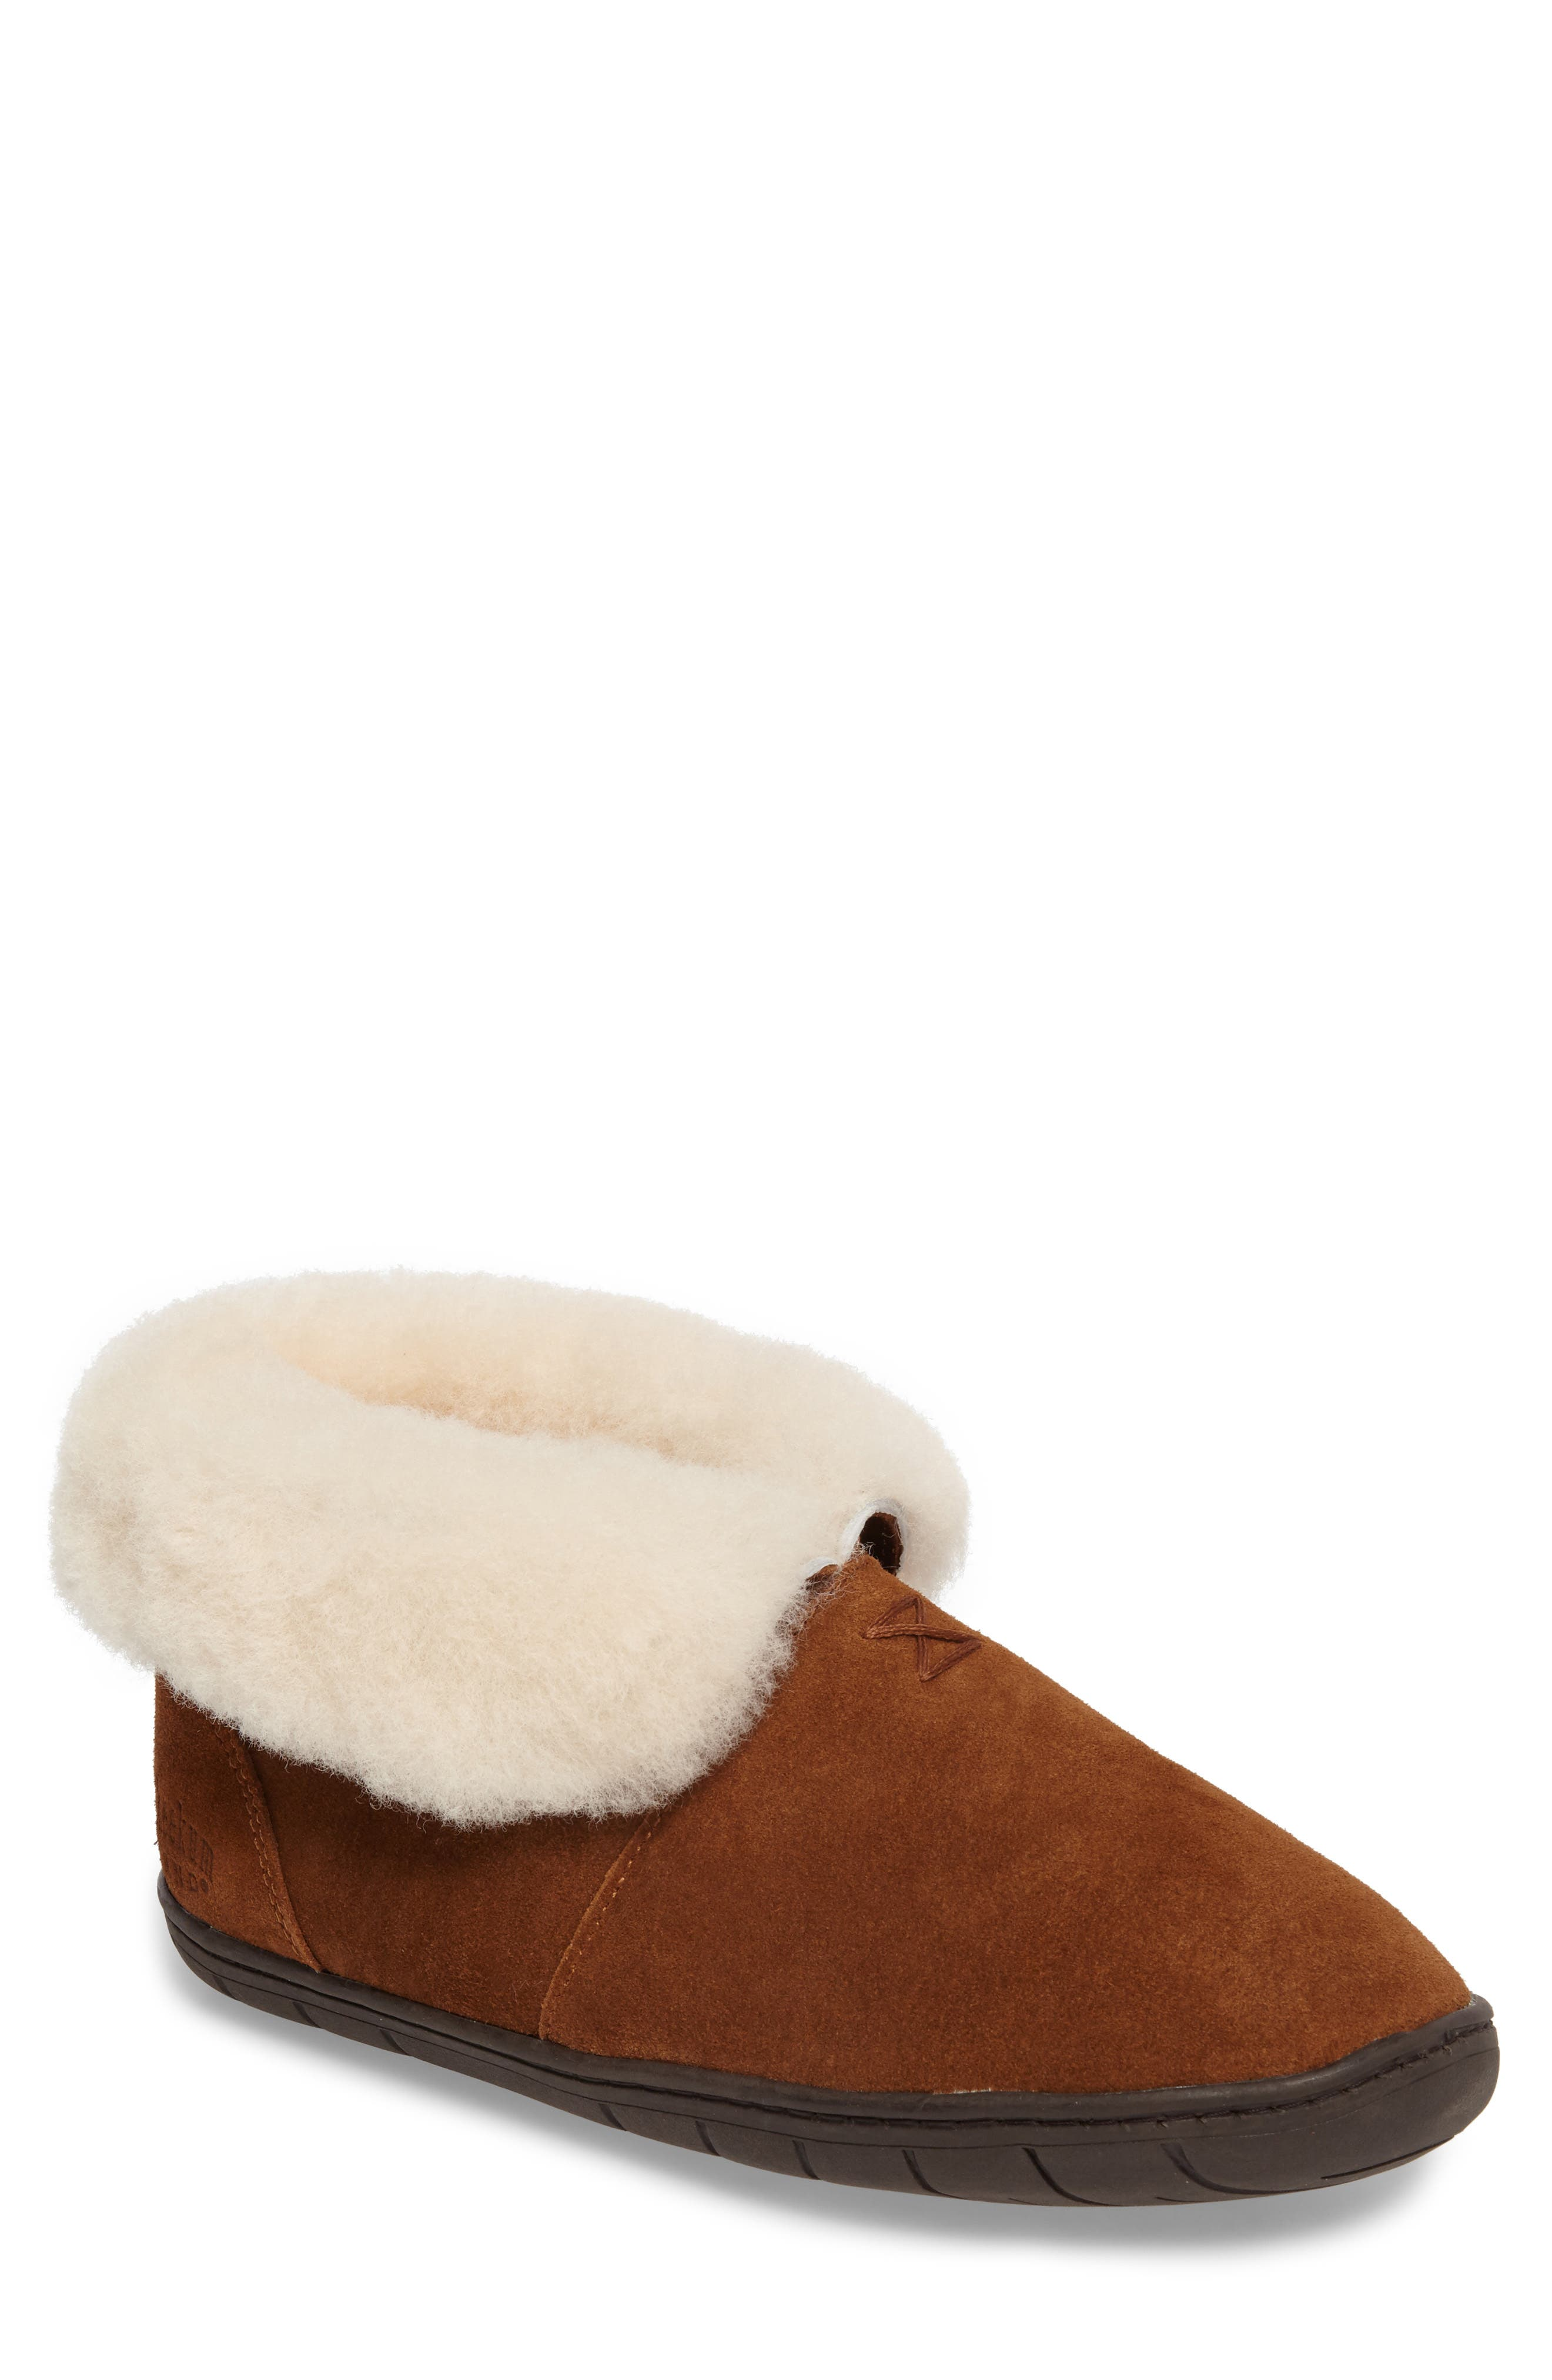 Alternate Image 1 Selected - Staheekum Tundra Slipper Bootie with Genuine Shearling Lining (Men)